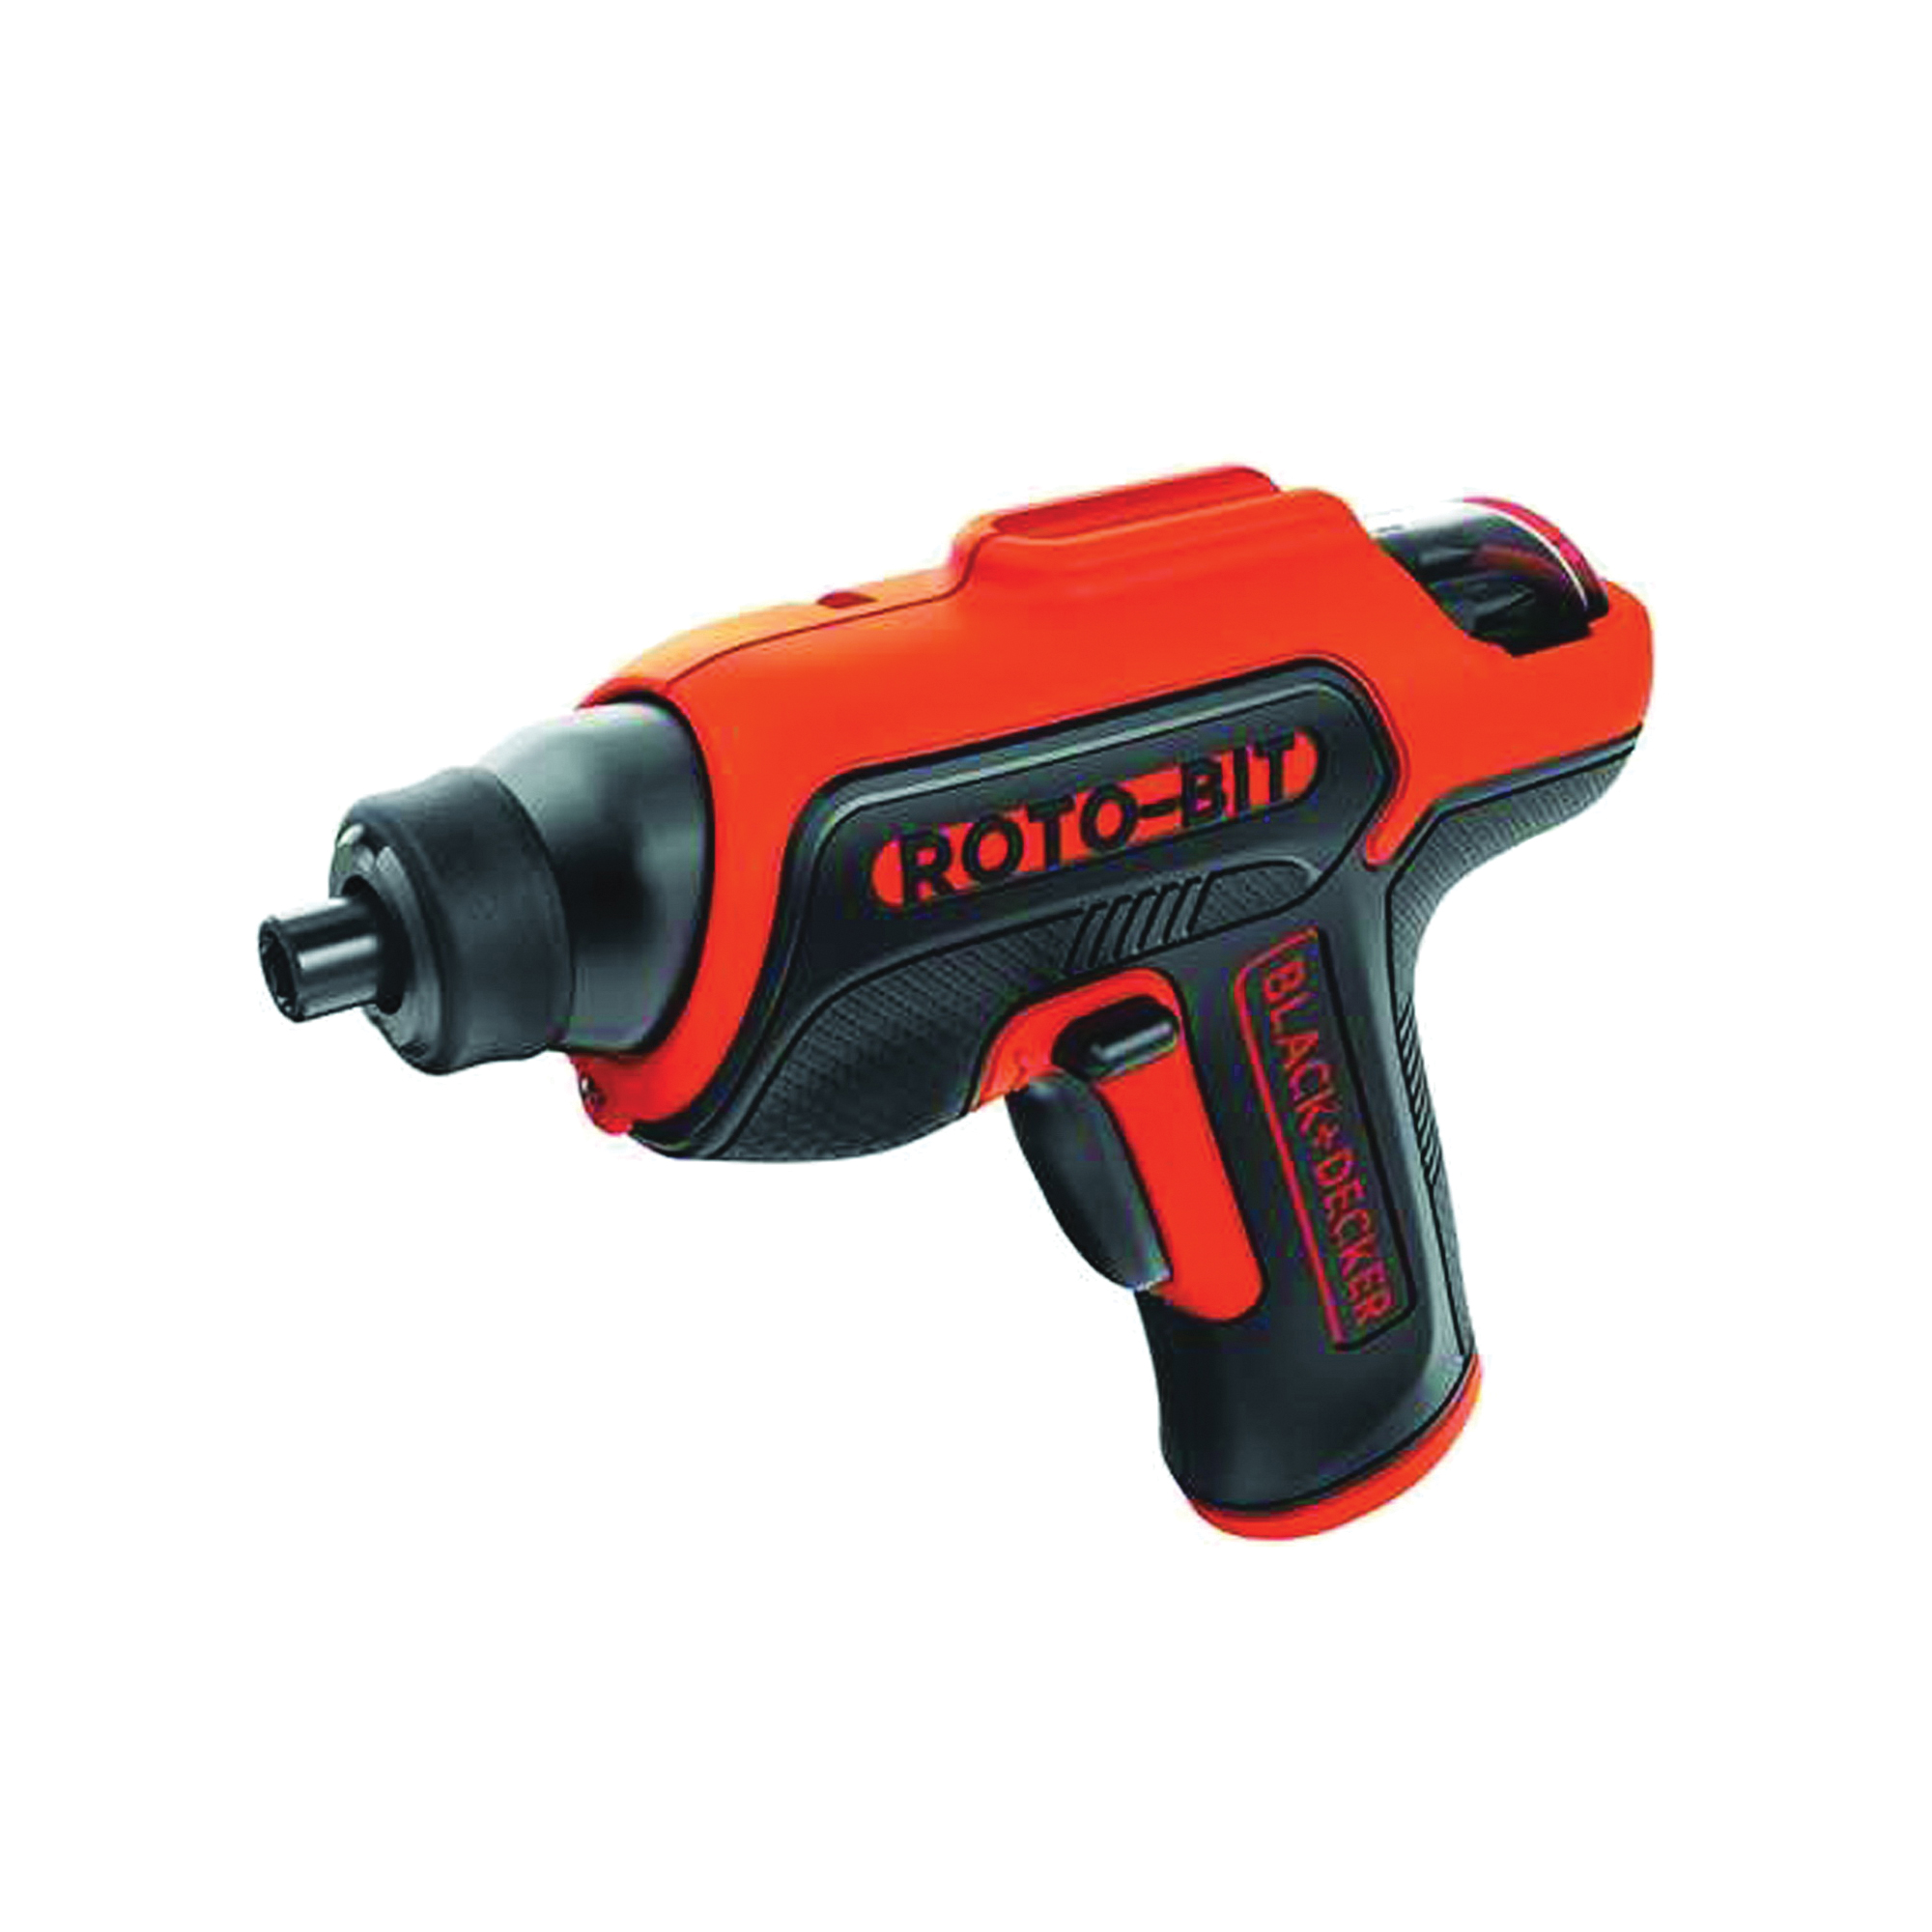 Picture of Black+Decker BDCS50C Storage Screwdriver, Bare Tool, 4 V Battery, 1.4 Ah, 3/8 in Chuck, Keyless Chuck, 40 in-lb